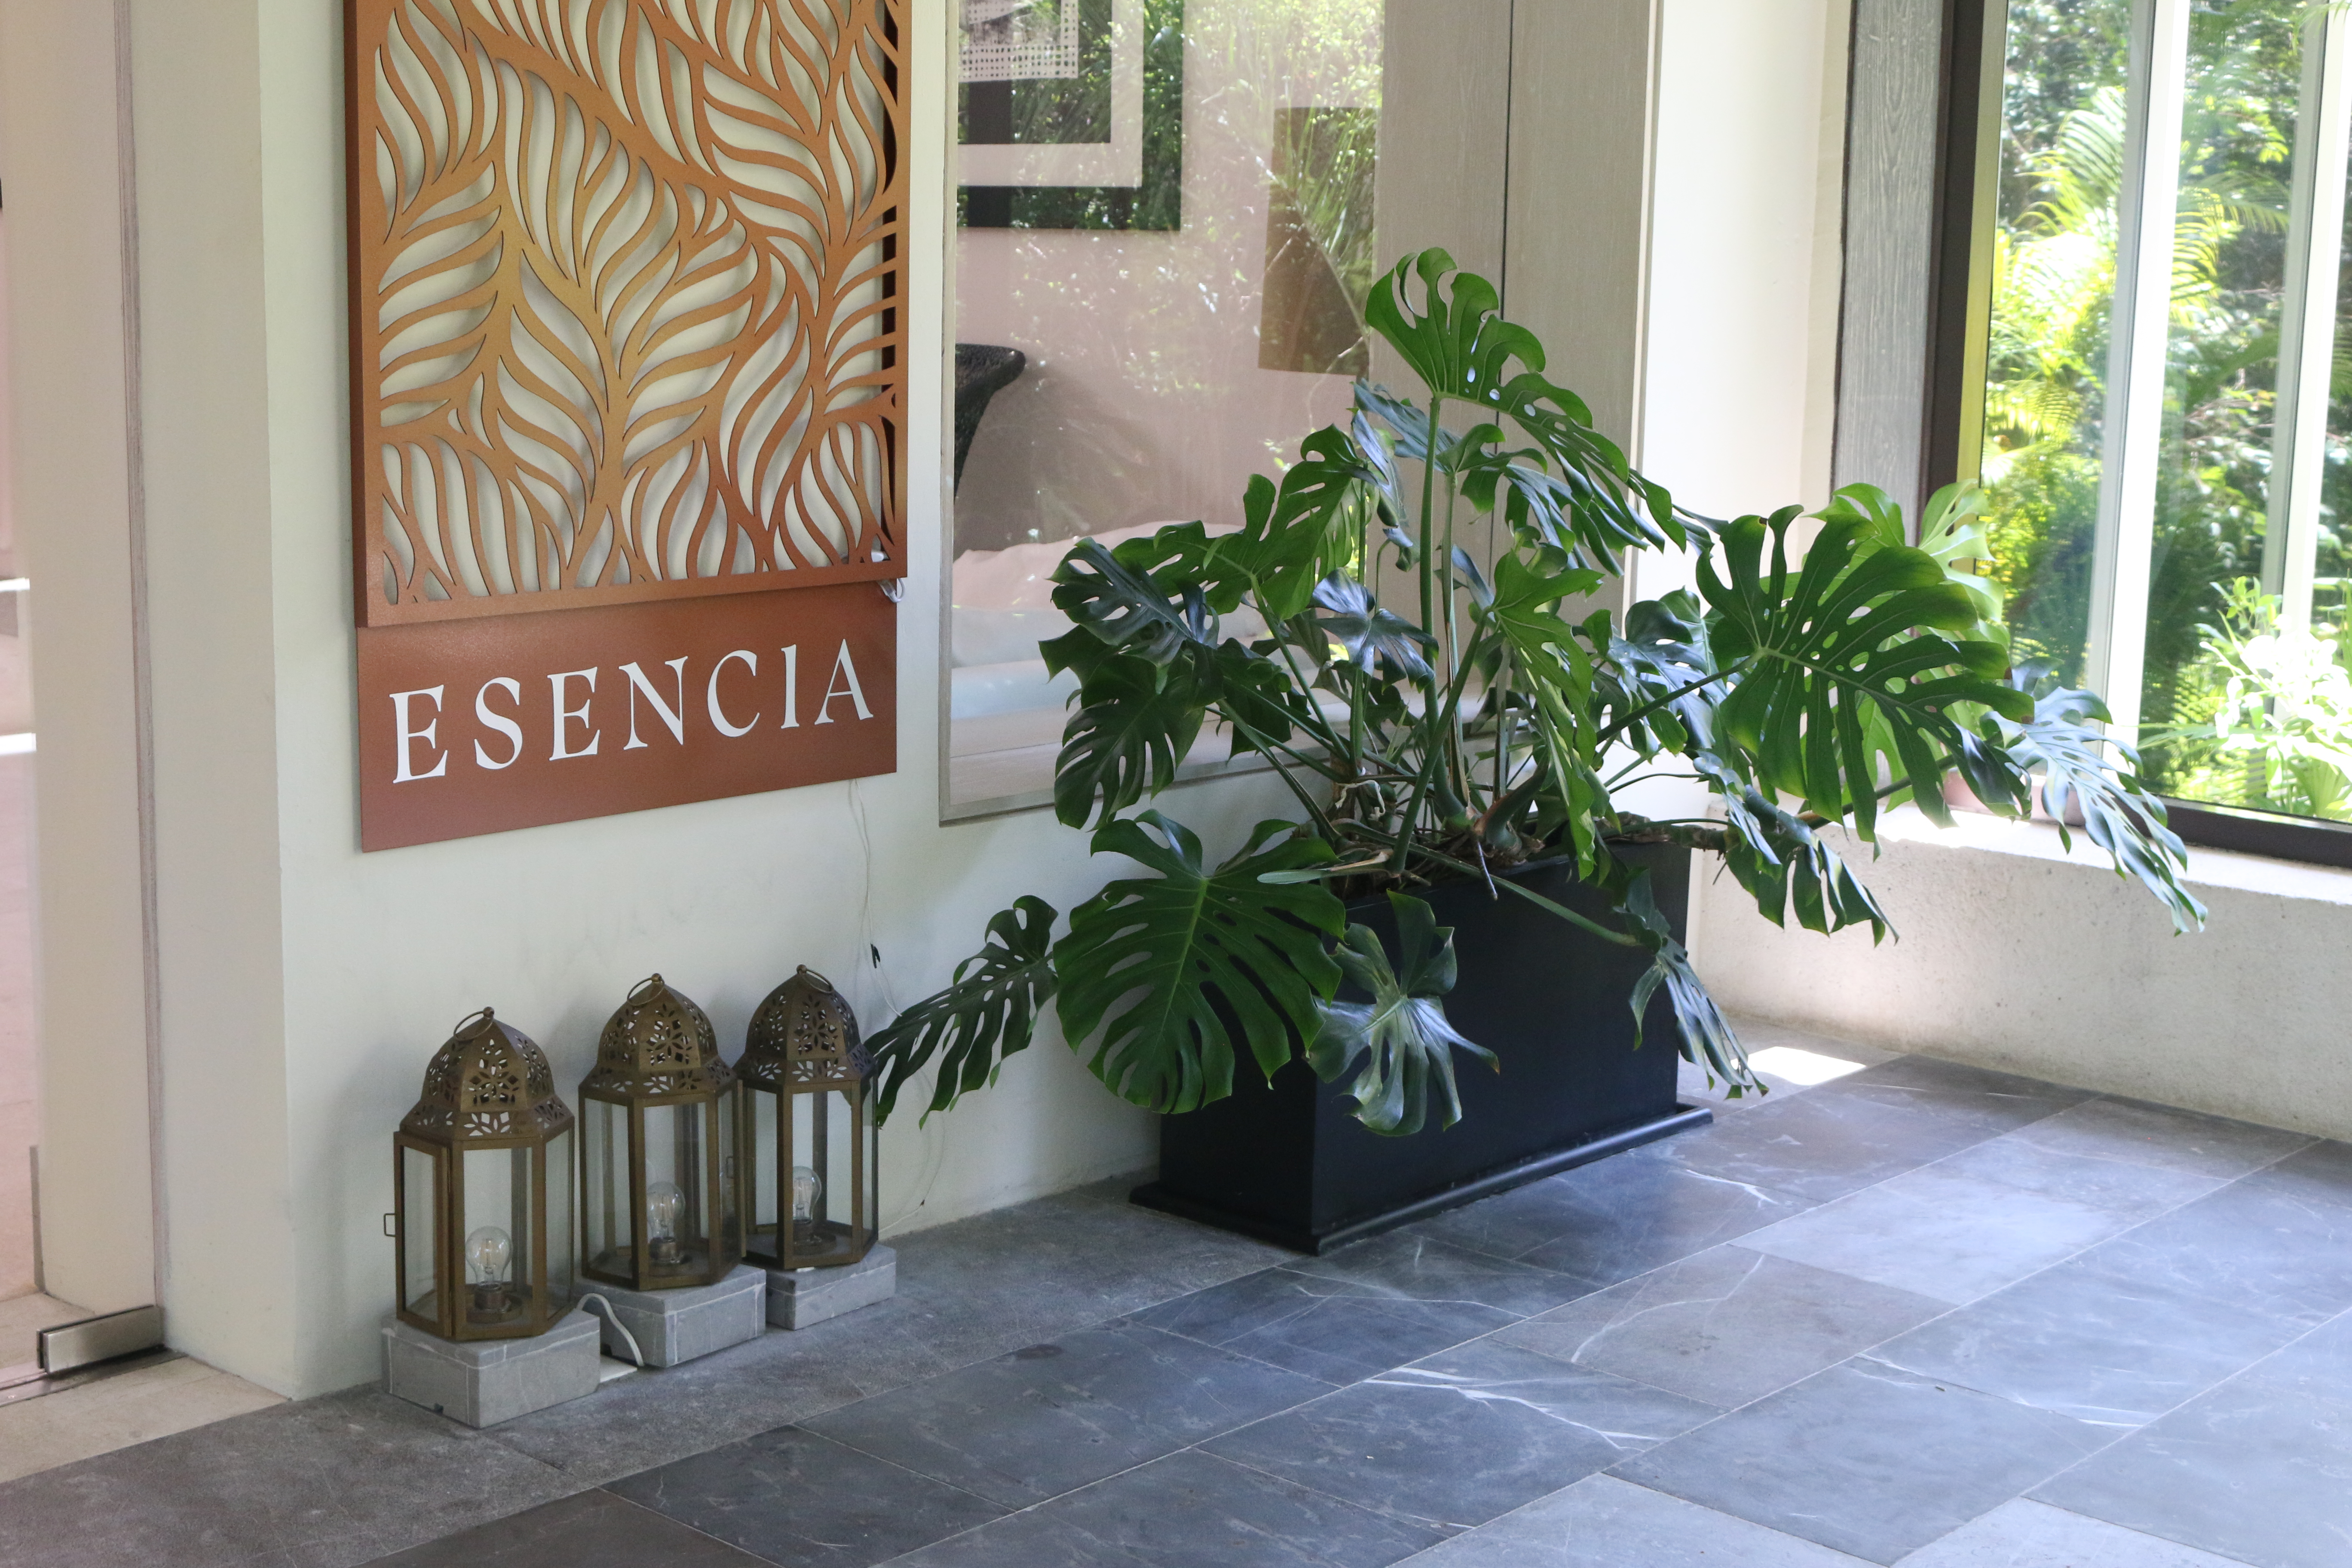 Entrance to Esencia Wellness Spa, where guests can enjoy all-inclusive spa treatments.